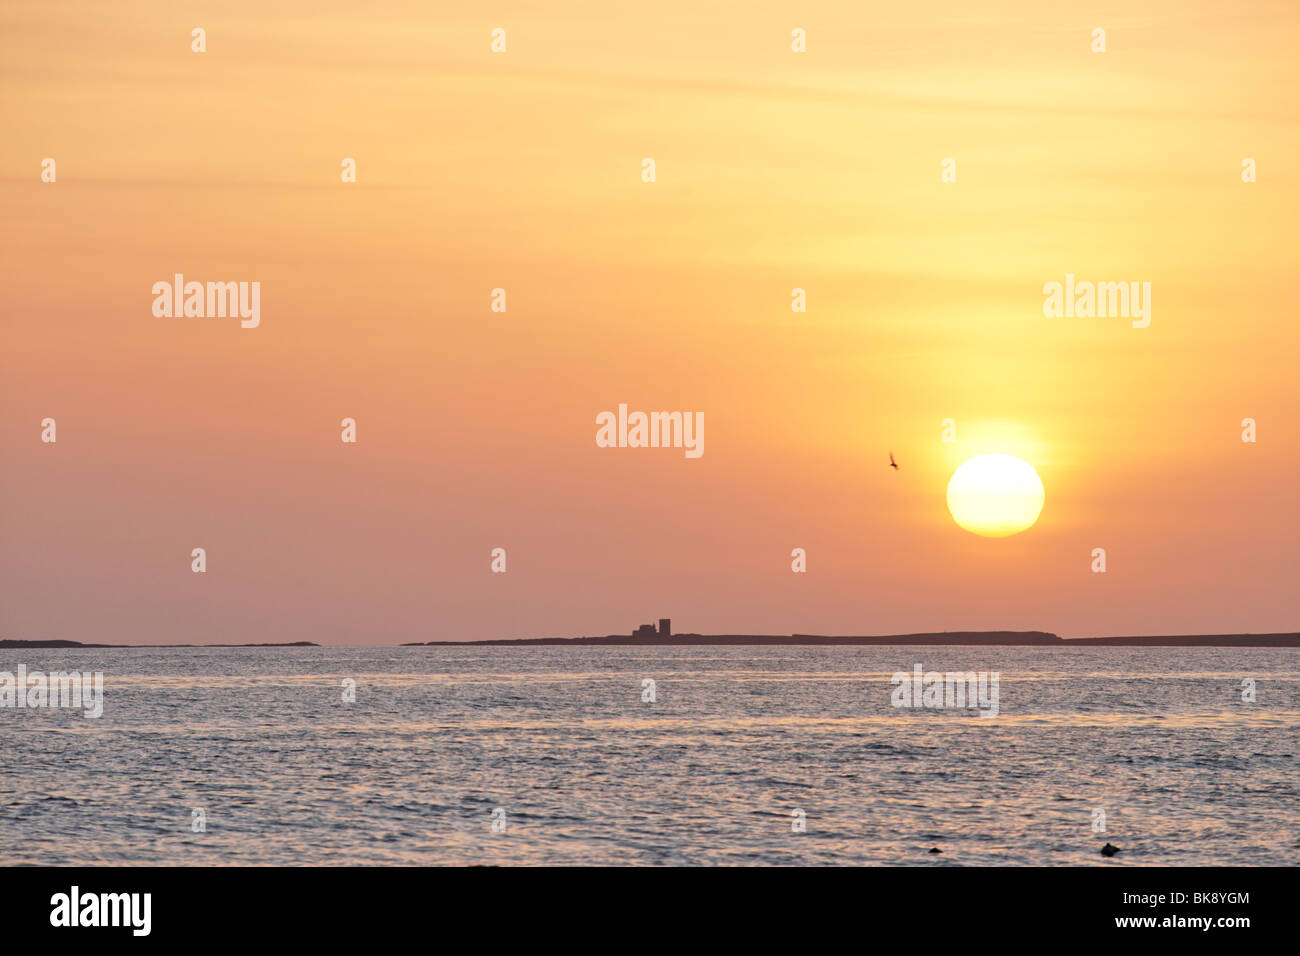 The Farne Islands at sunrise. Viewed from Bamburgh, Northumberland, England, UK. Stock Photo